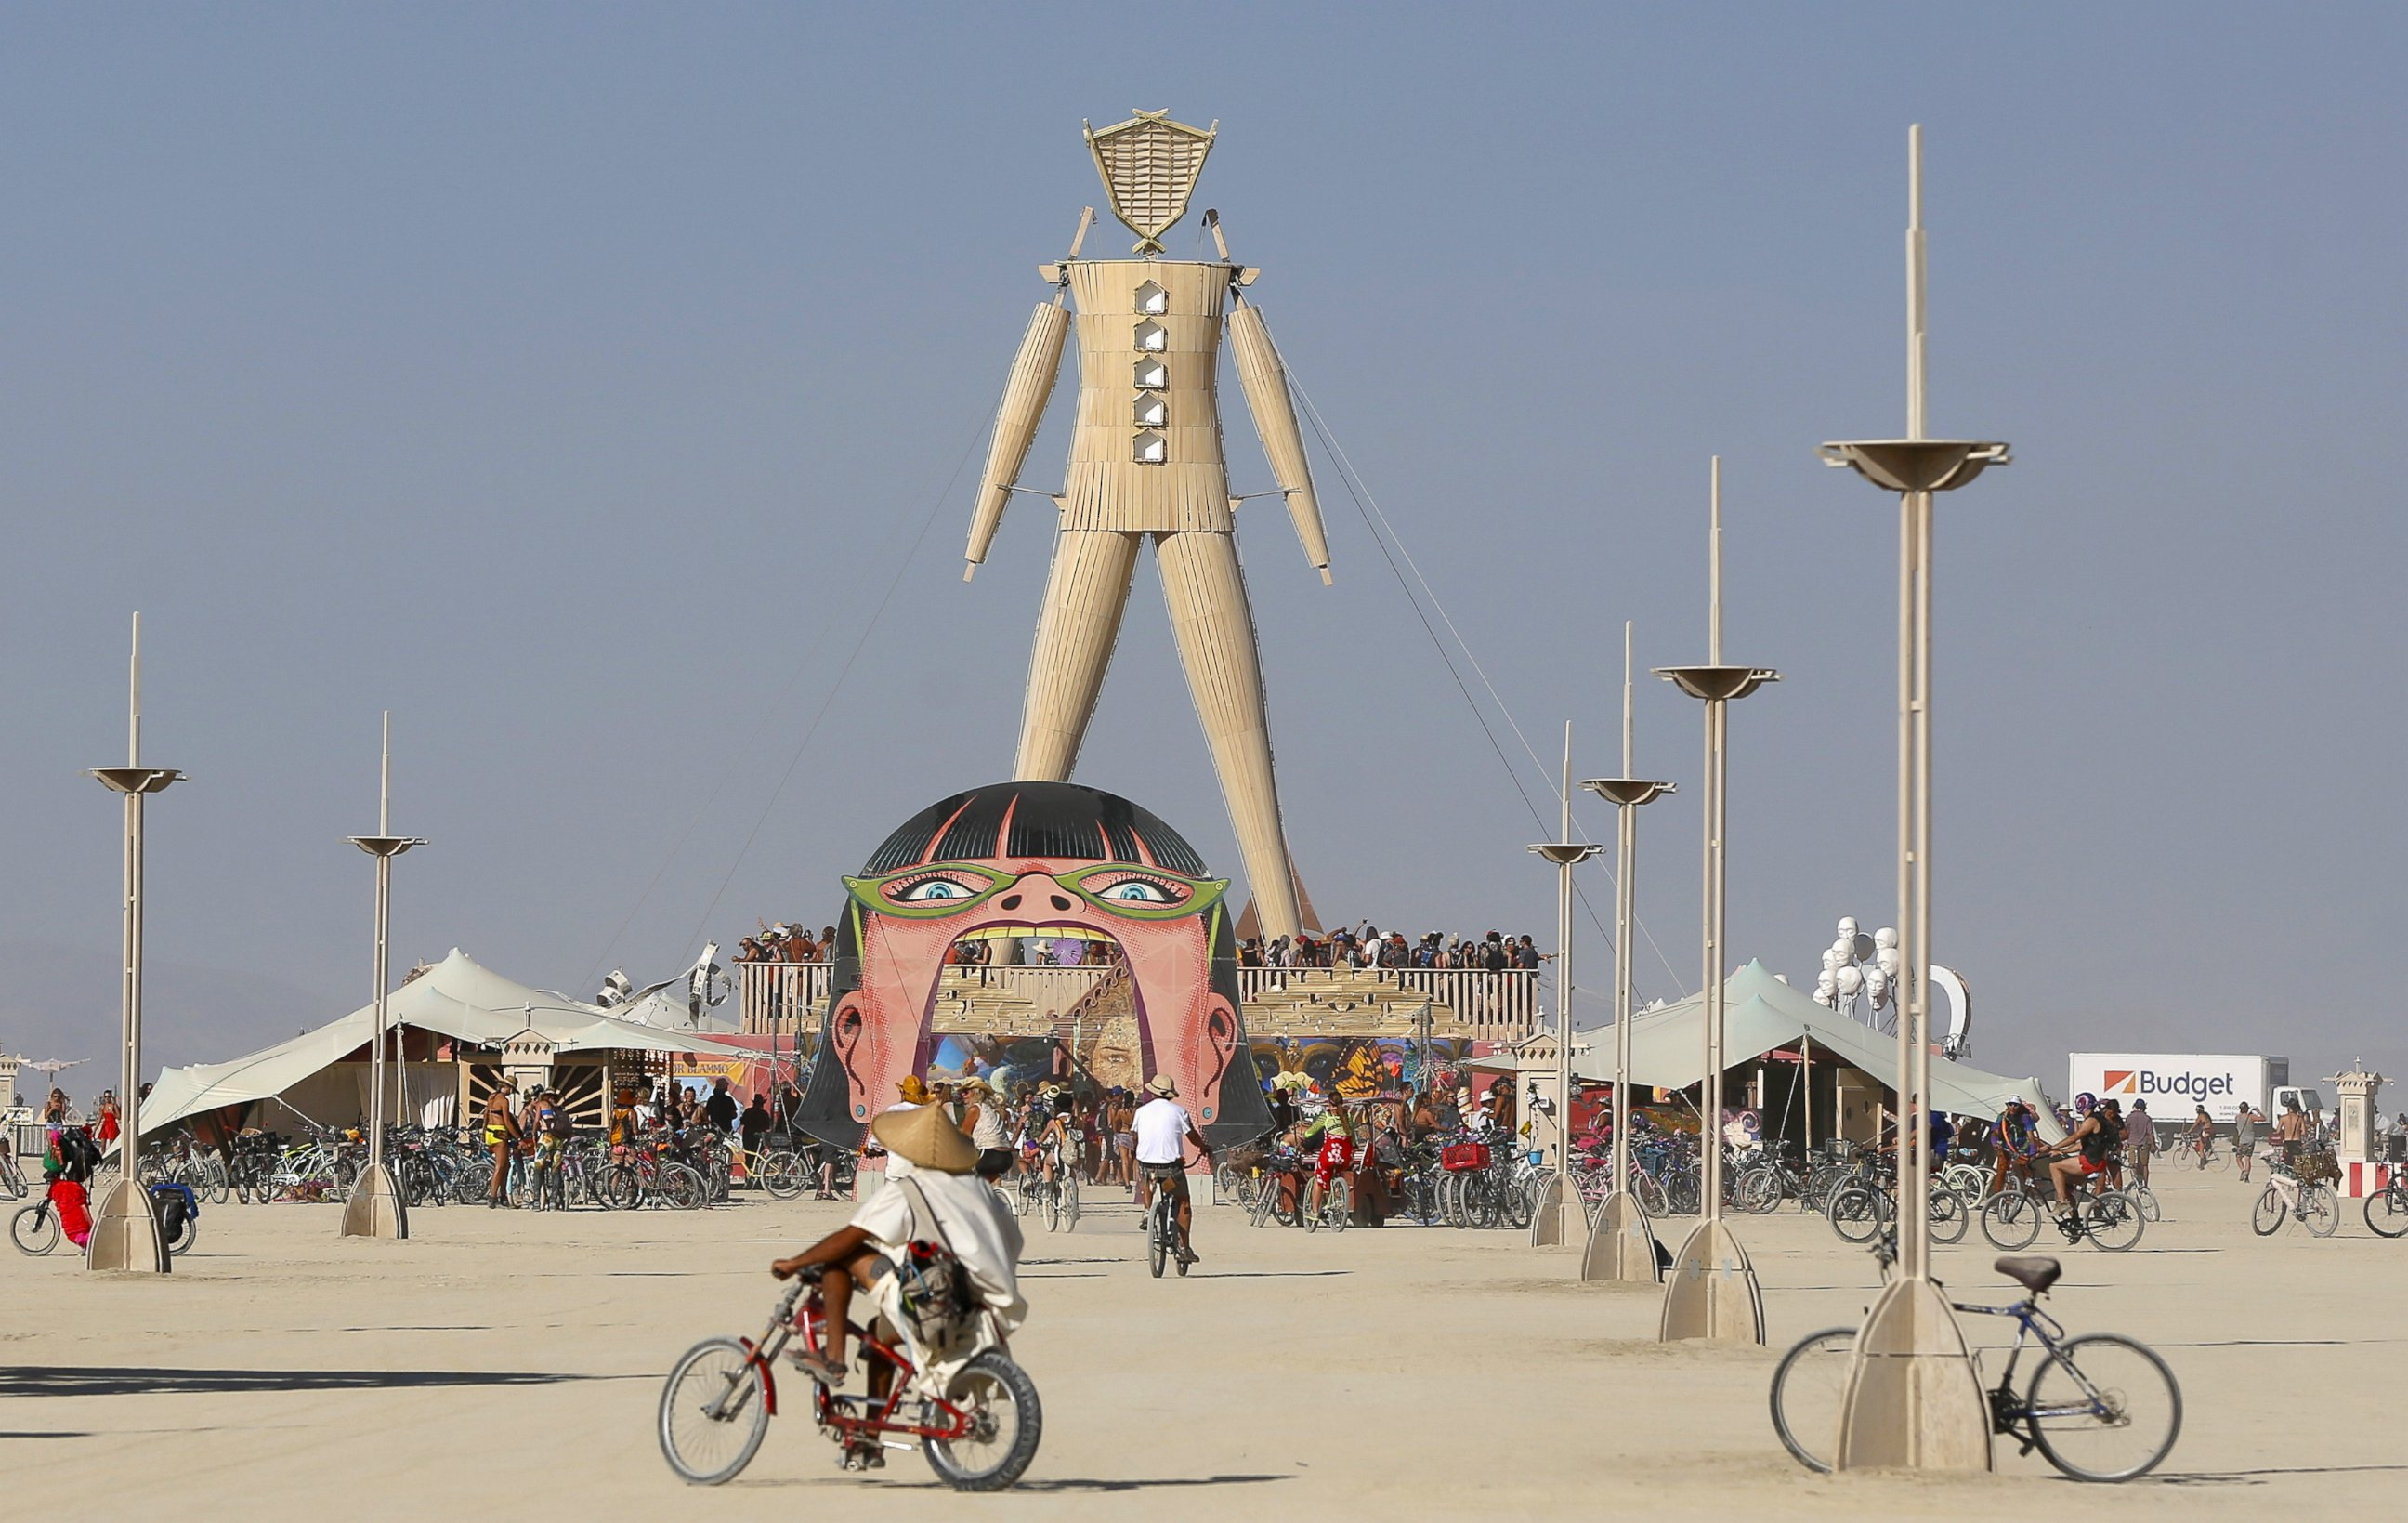 Фестиваль Burning Man, США, Невада